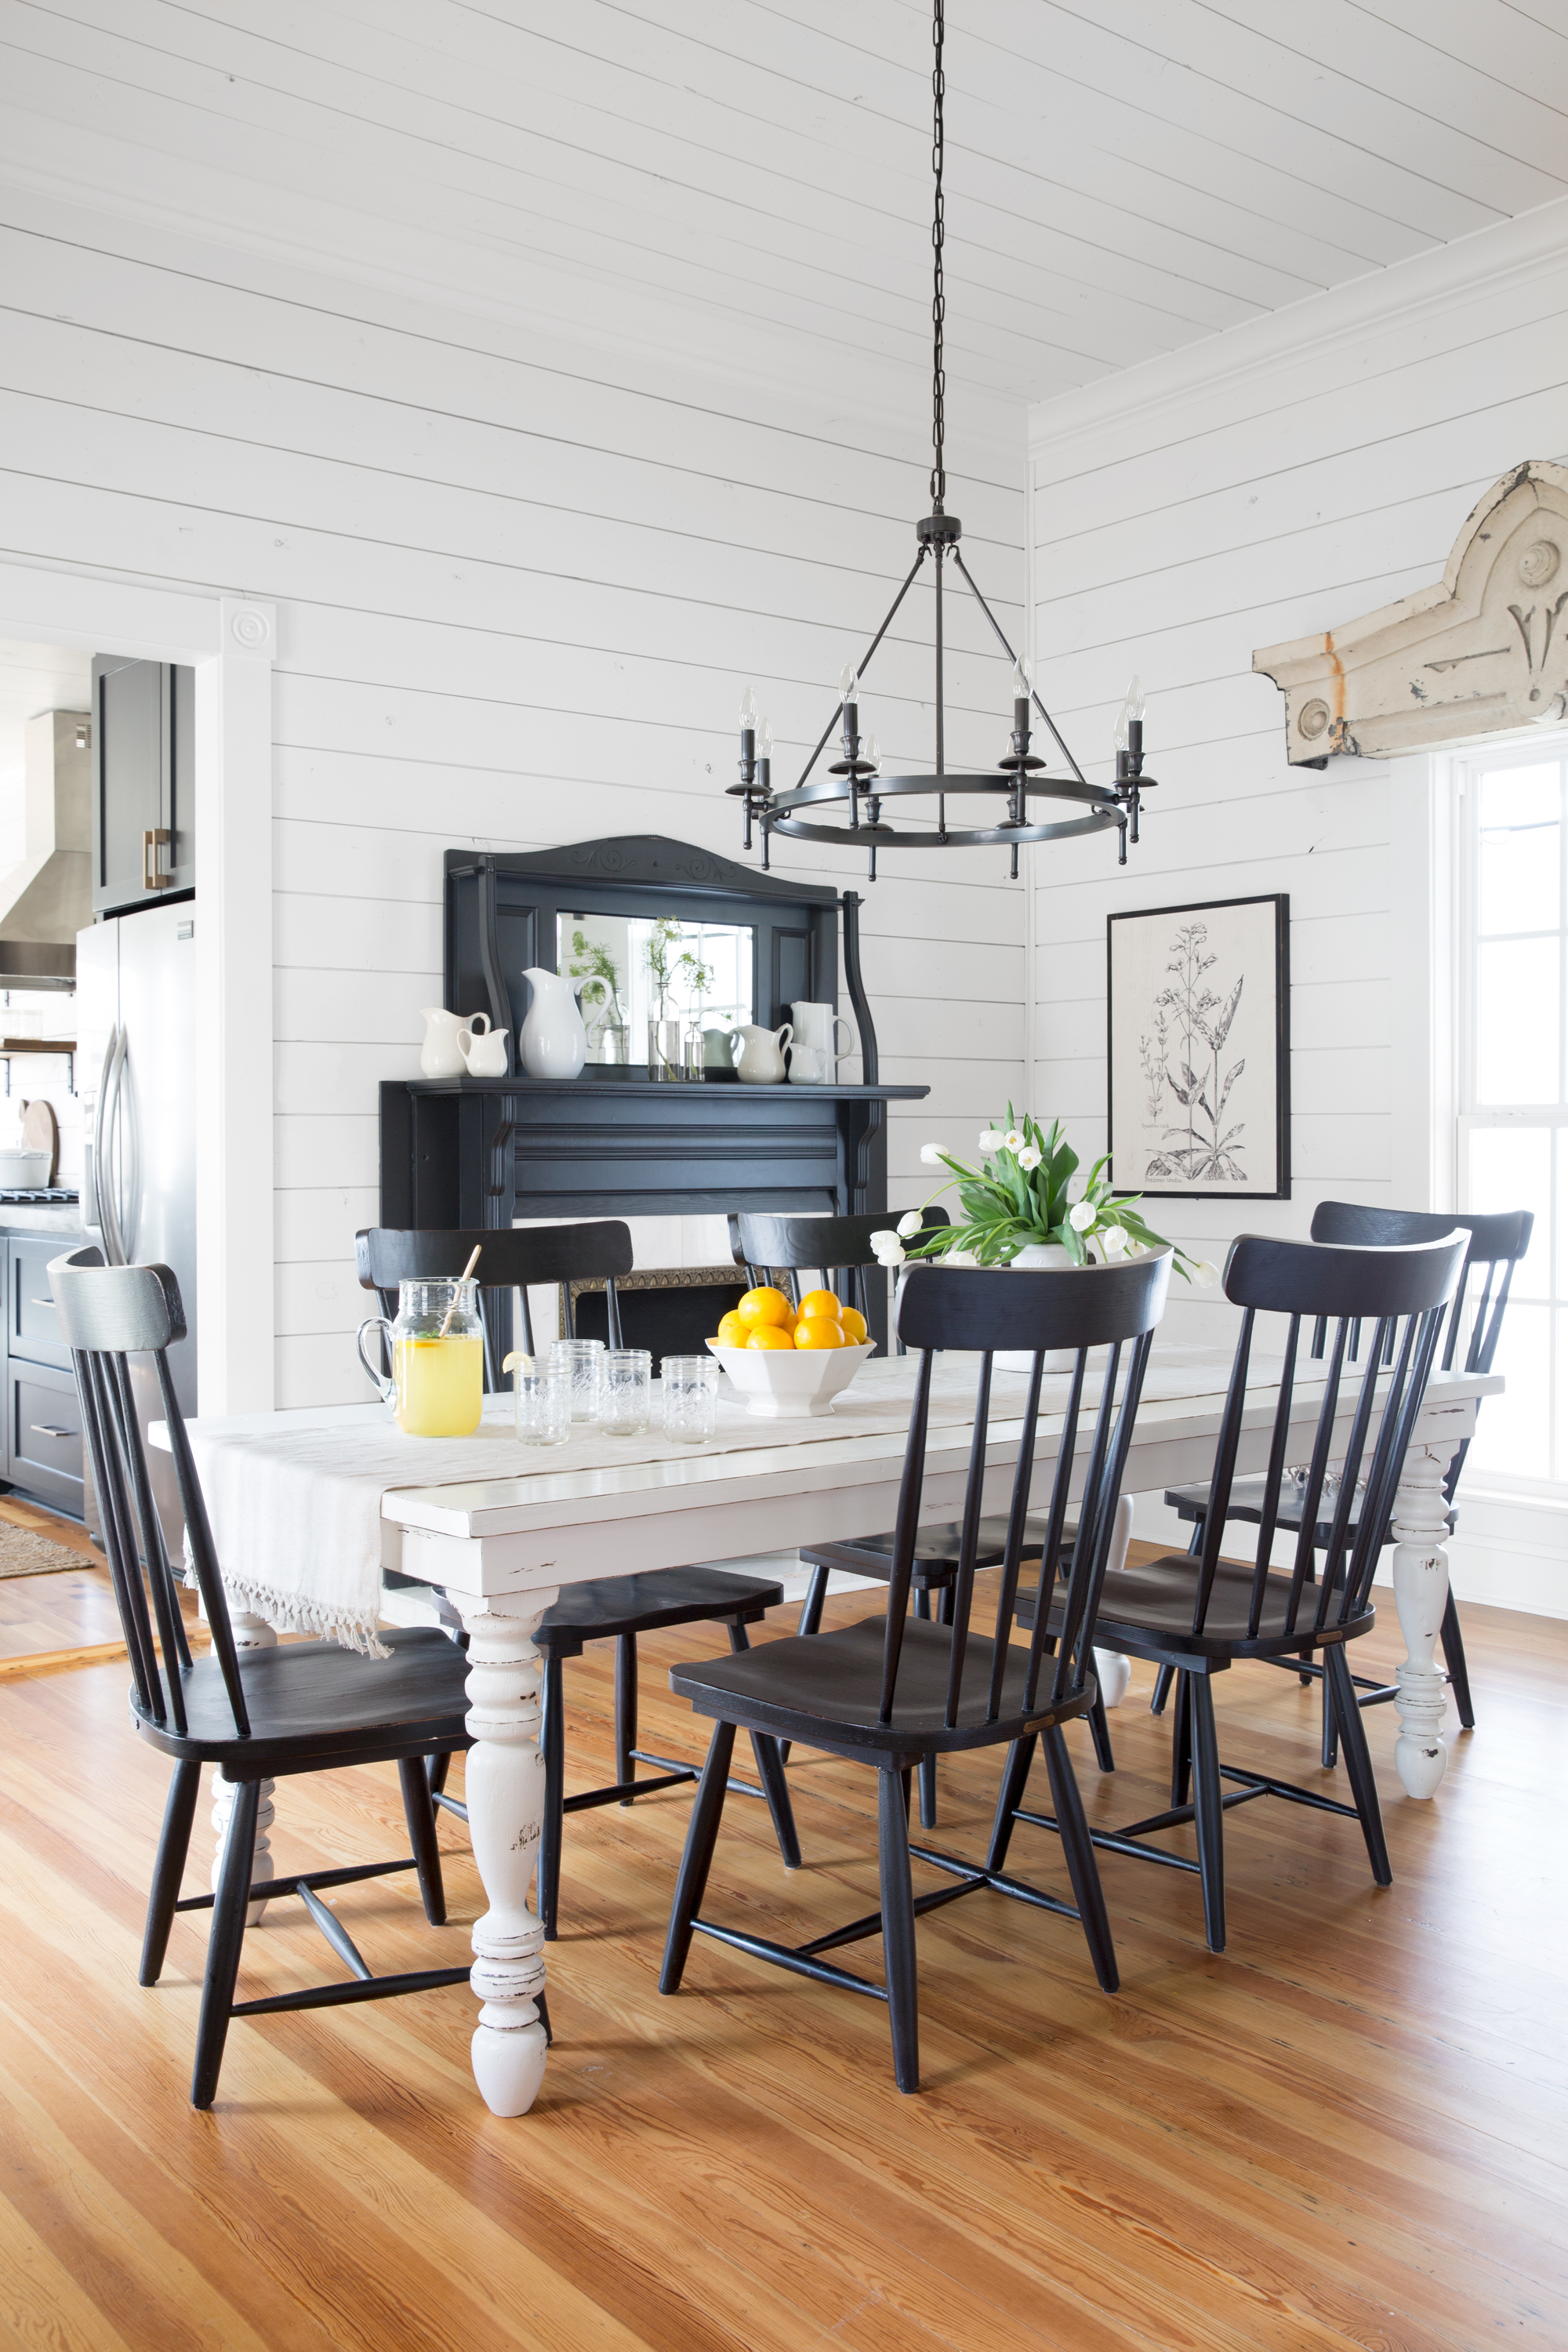 Joanna Gaines Farmhouse Dining Room Chip And Joanna Gaines Magnolia House B Andb Tour Fixer